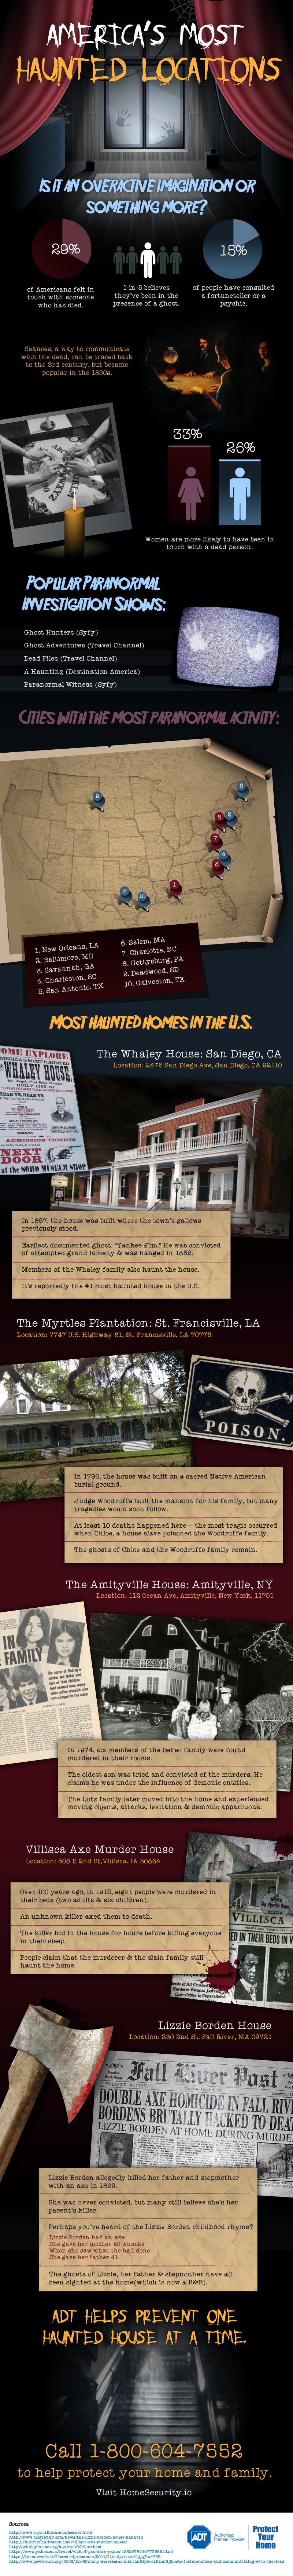 America's Most Haunted Locations